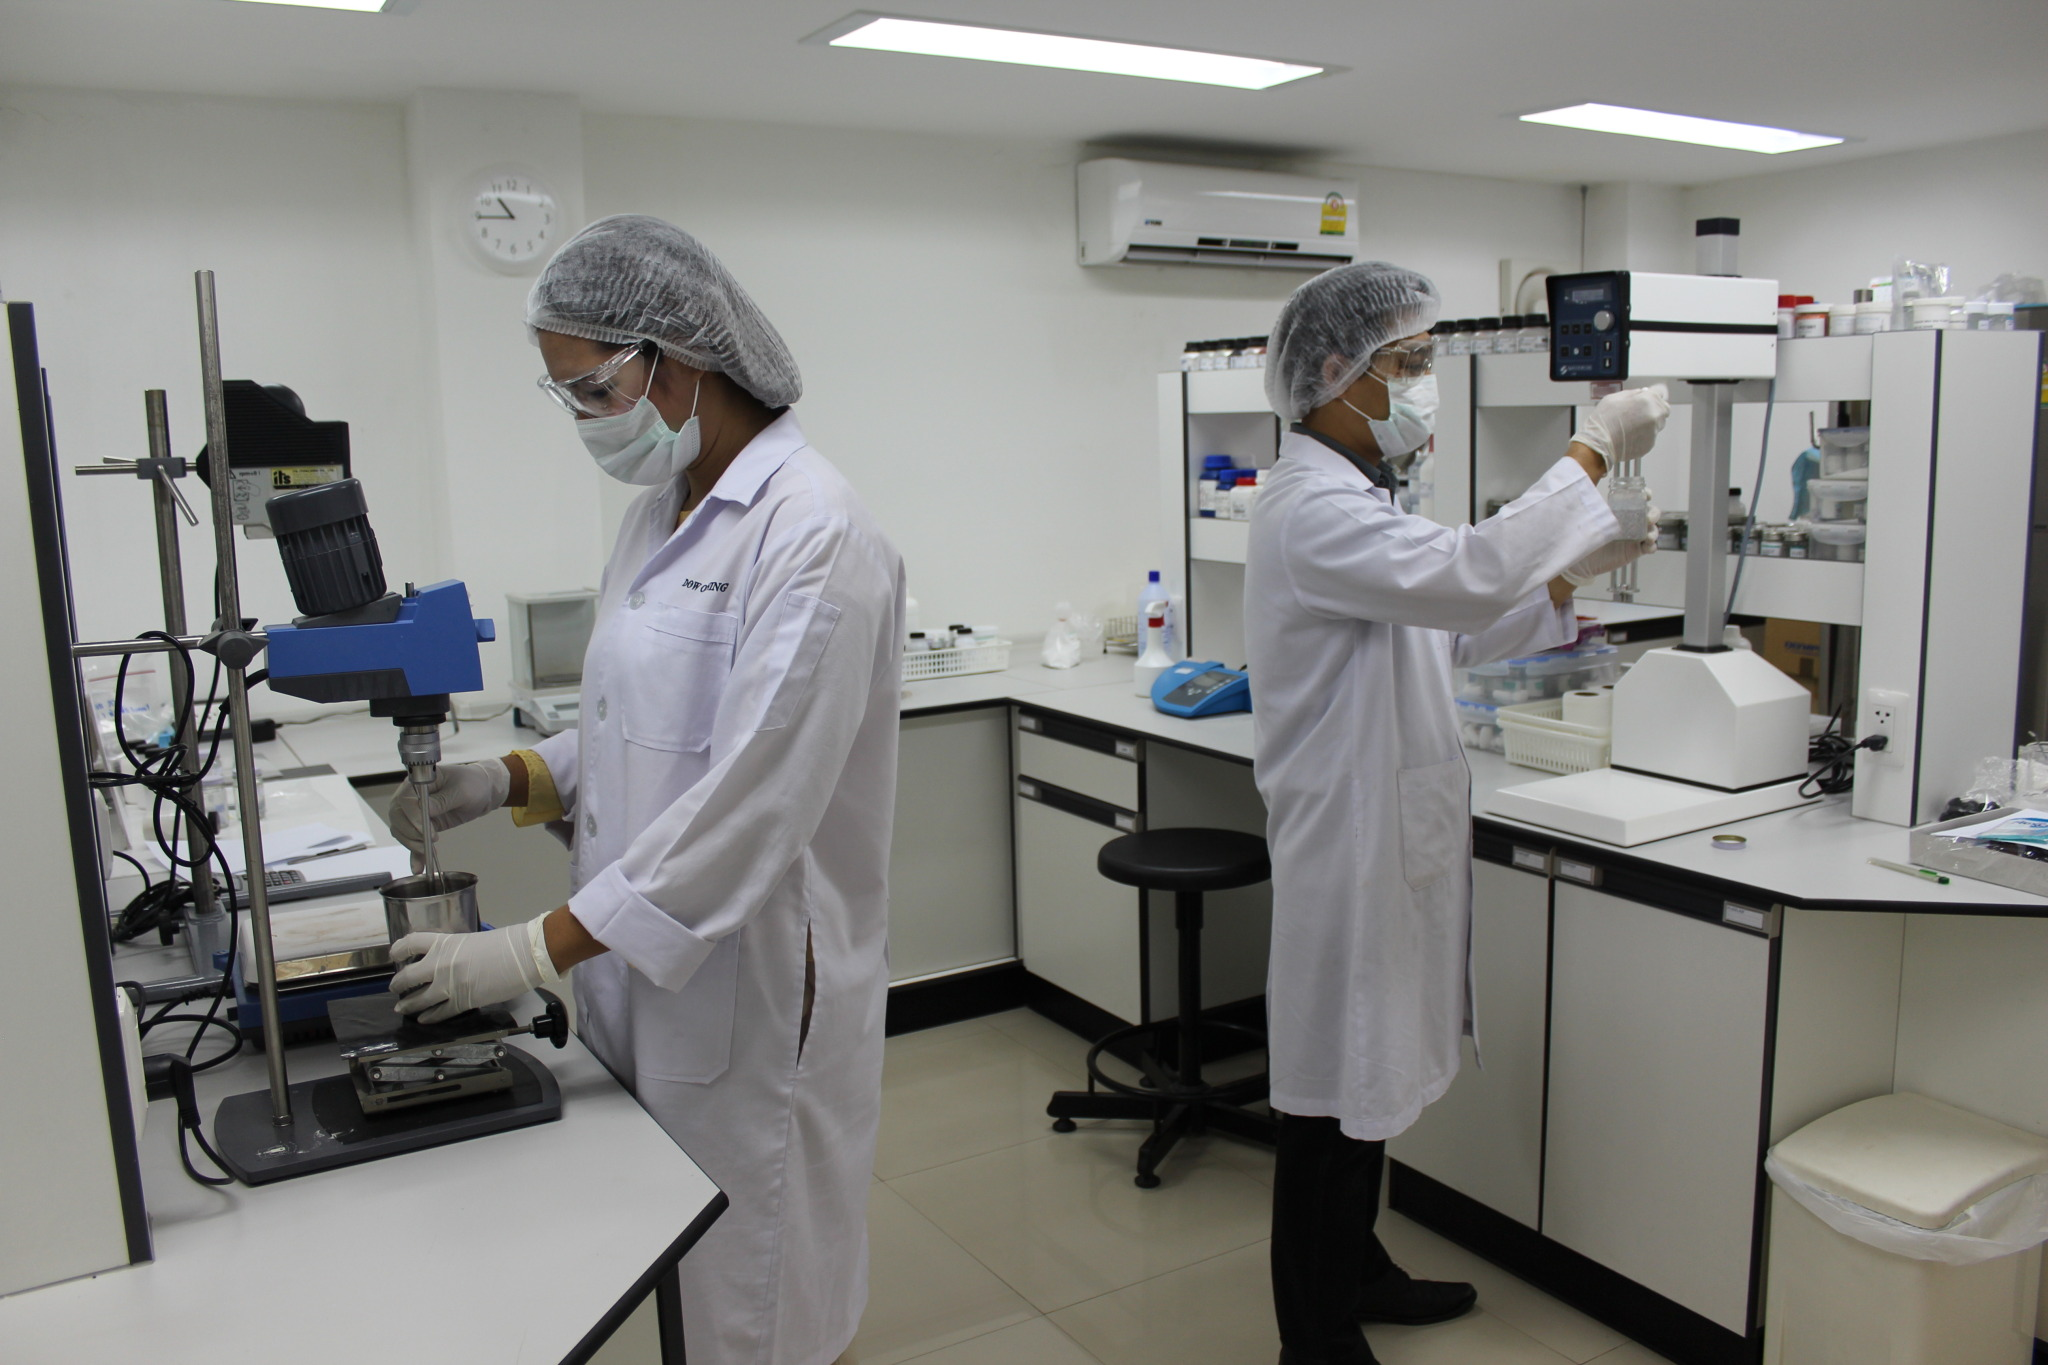 Summit Chemical Tech Support Lab 3 people